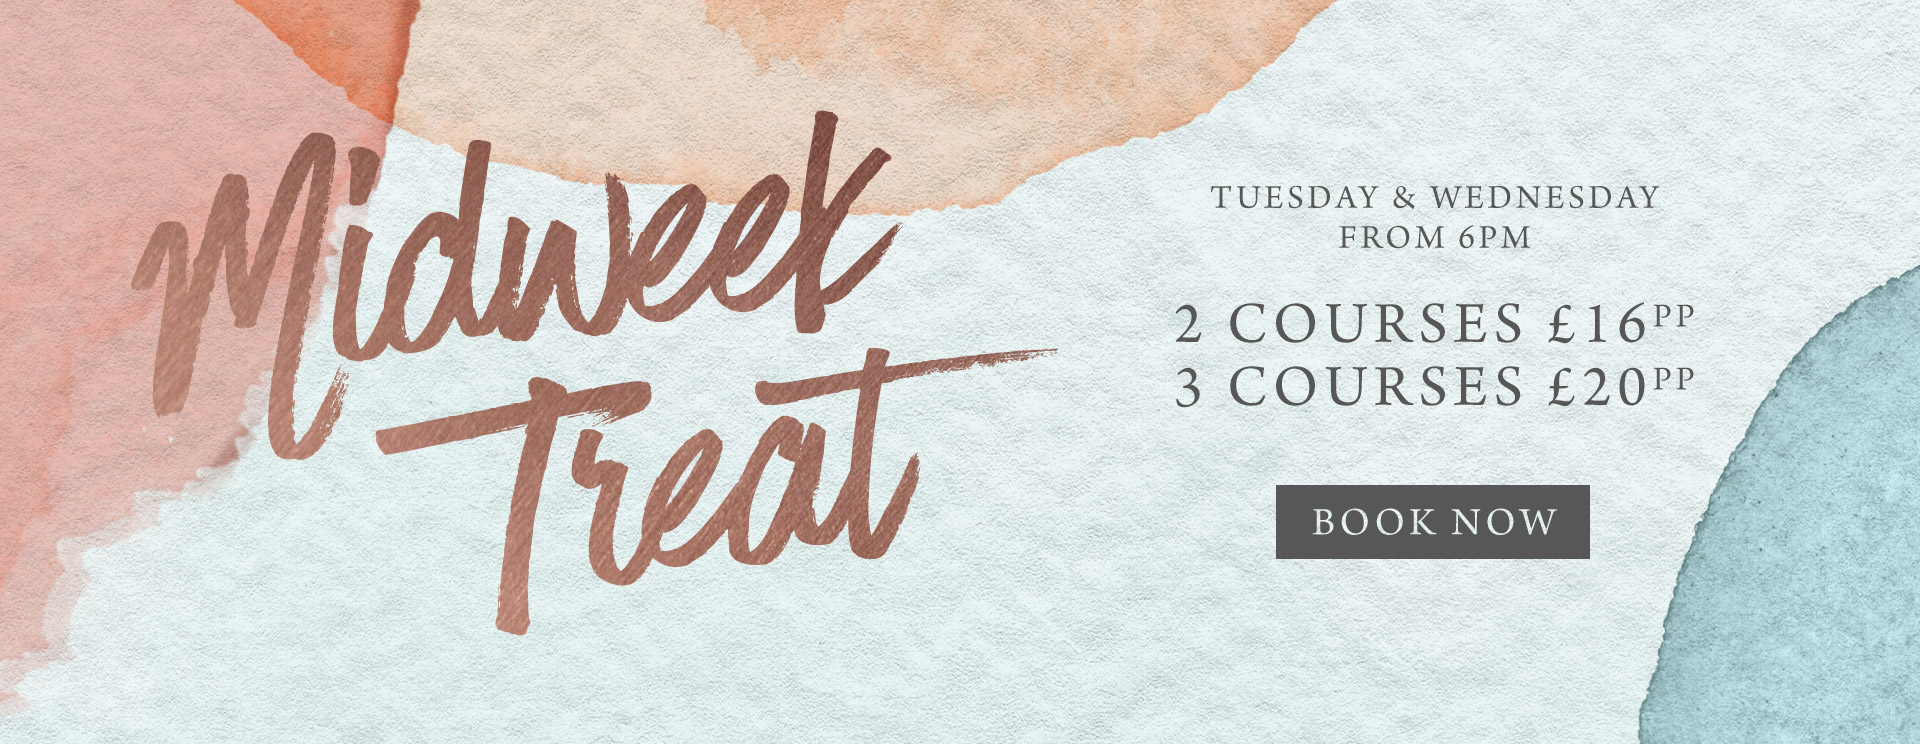 Midweek treat at The Orange Tree - Book now